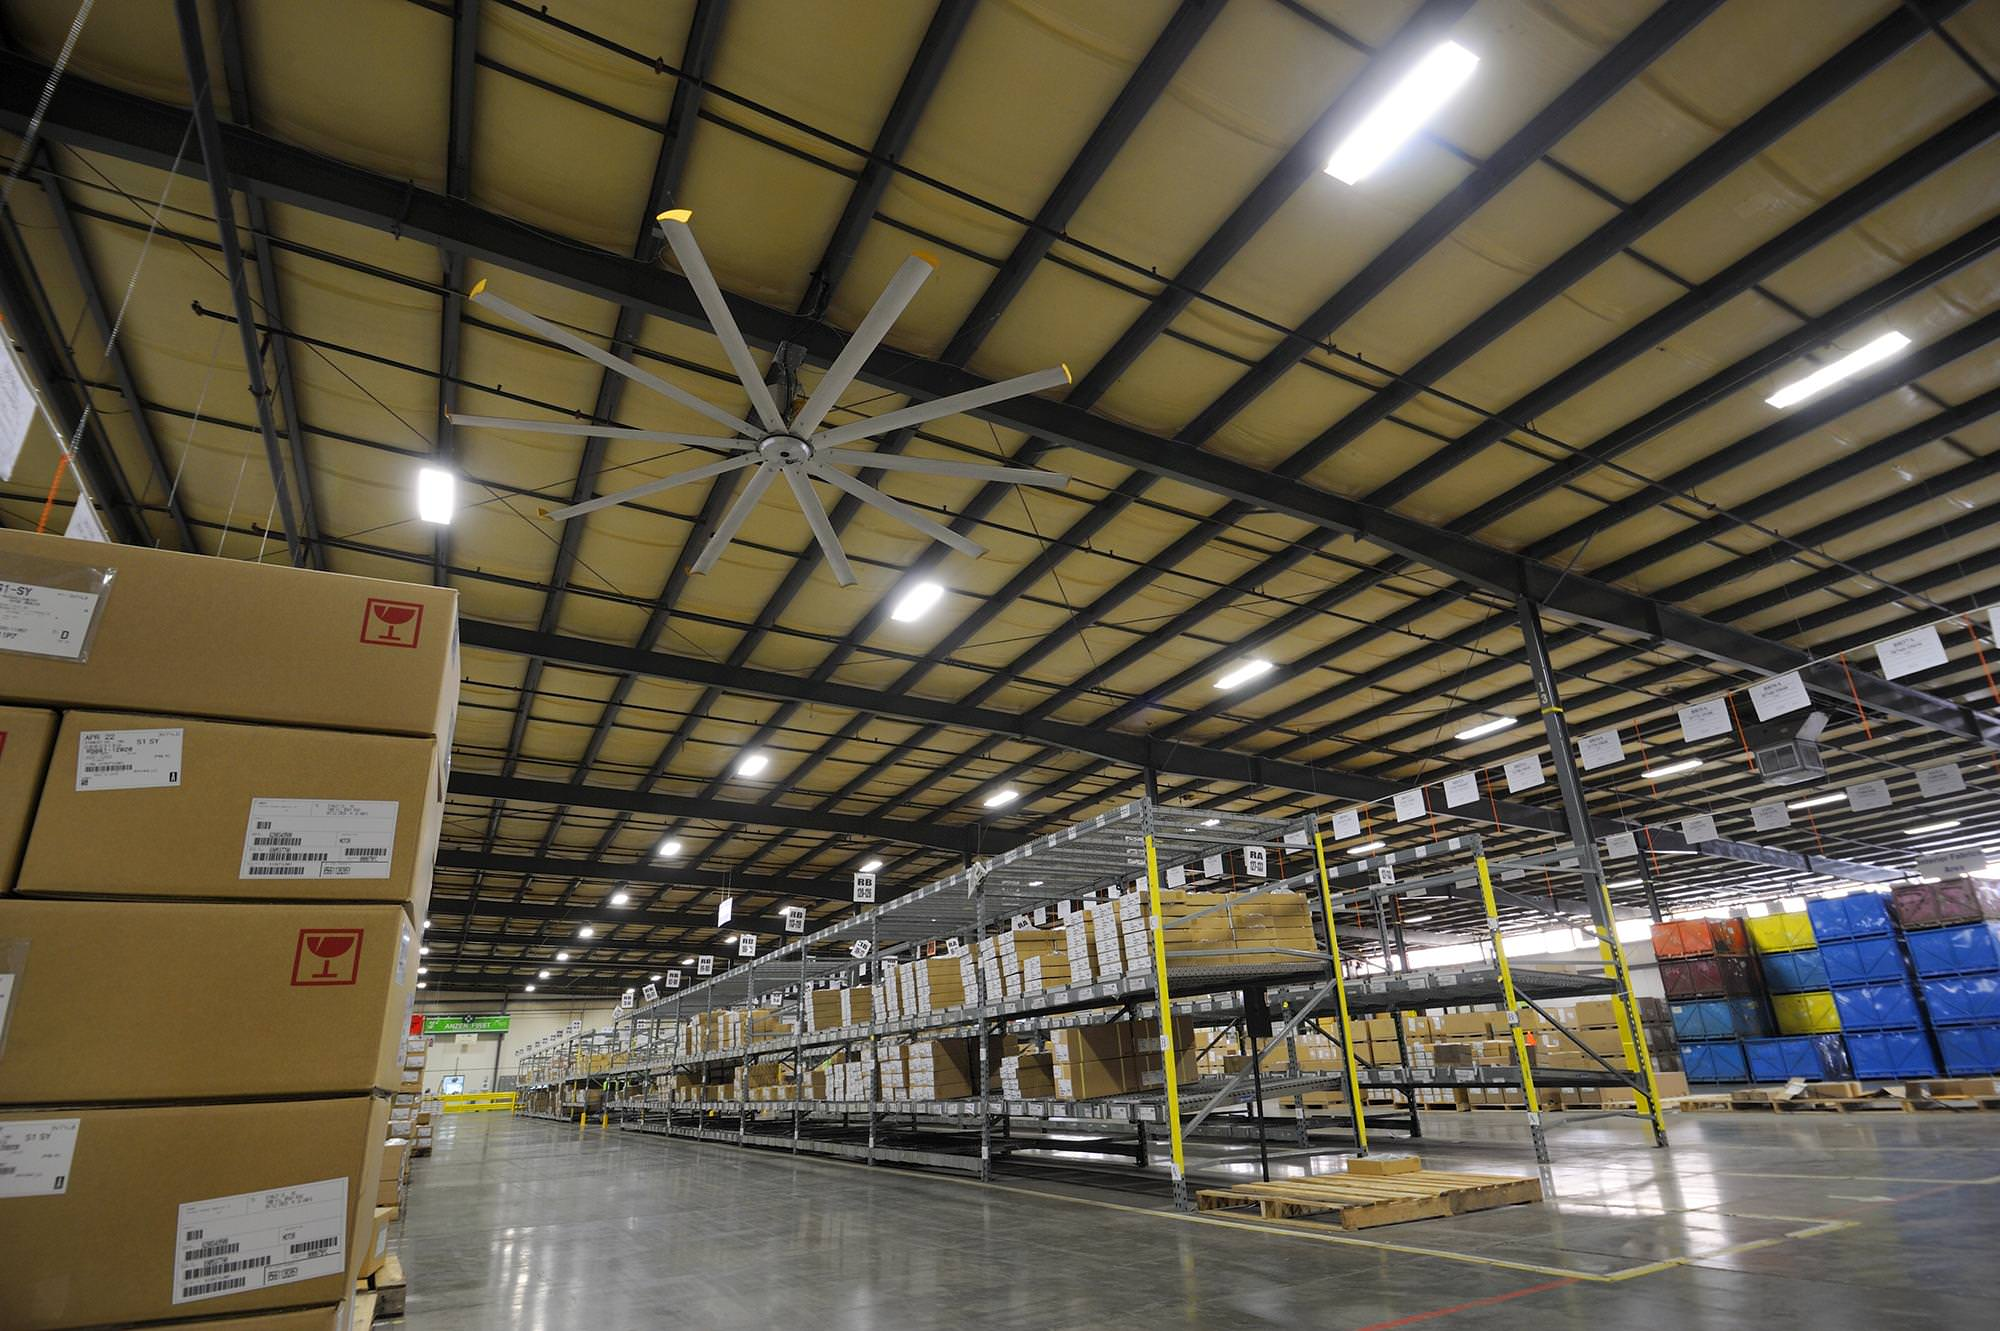 Big Ceiling Fans Australia Warehouse Ceiling Fans From Big Ass Fans Can Save You Up